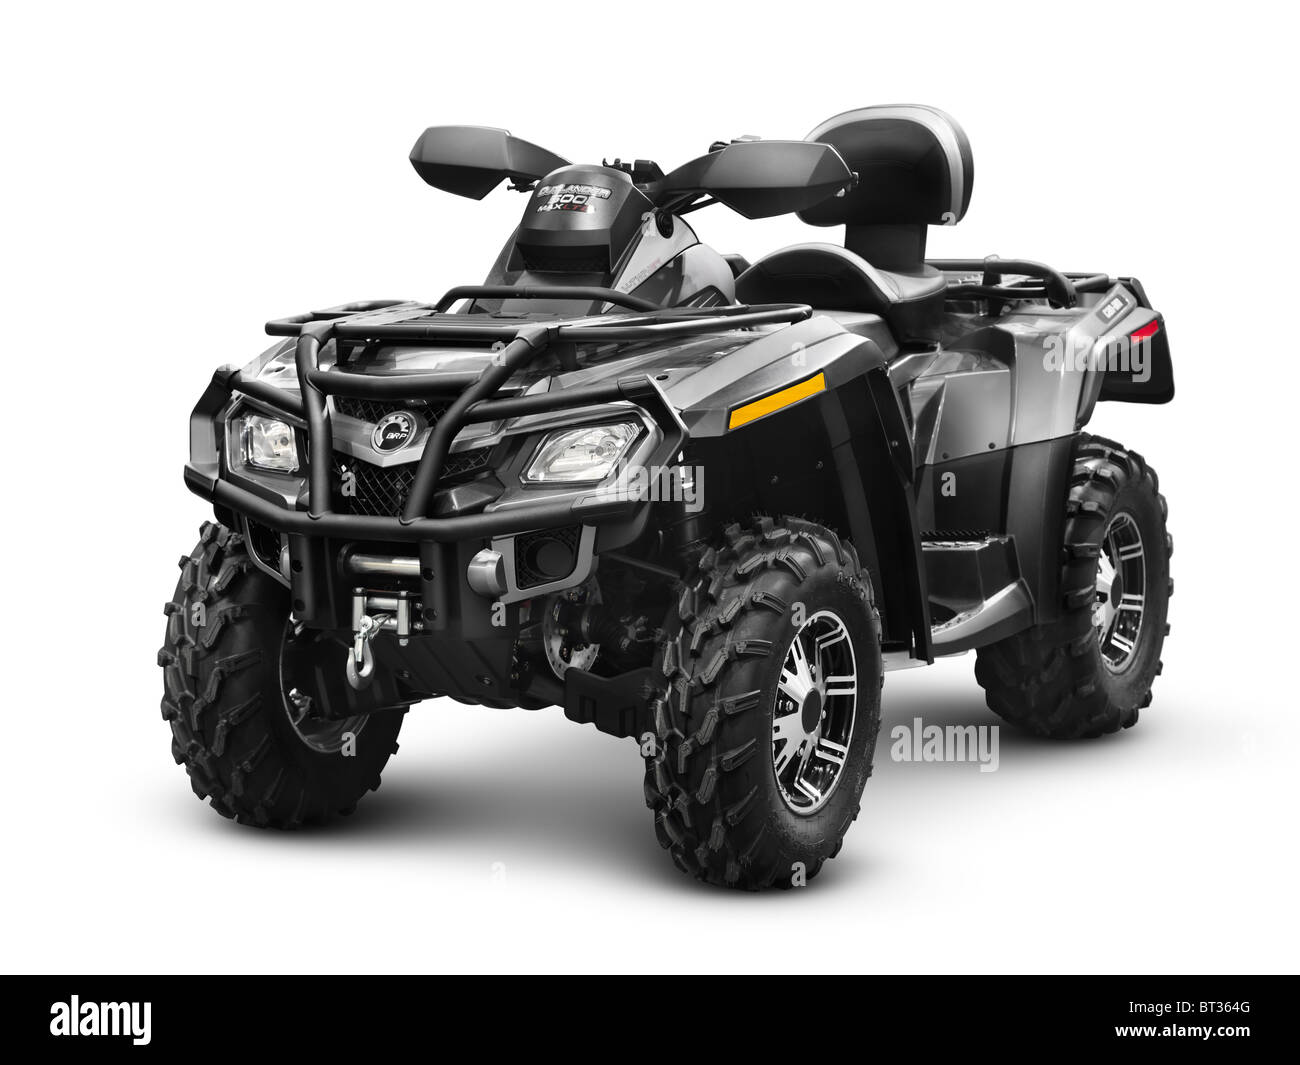 can am brp outlander 500 atv bombardier recreational products stock photo royalty free image. Black Bedroom Furniture Sets. Home Design Ideas